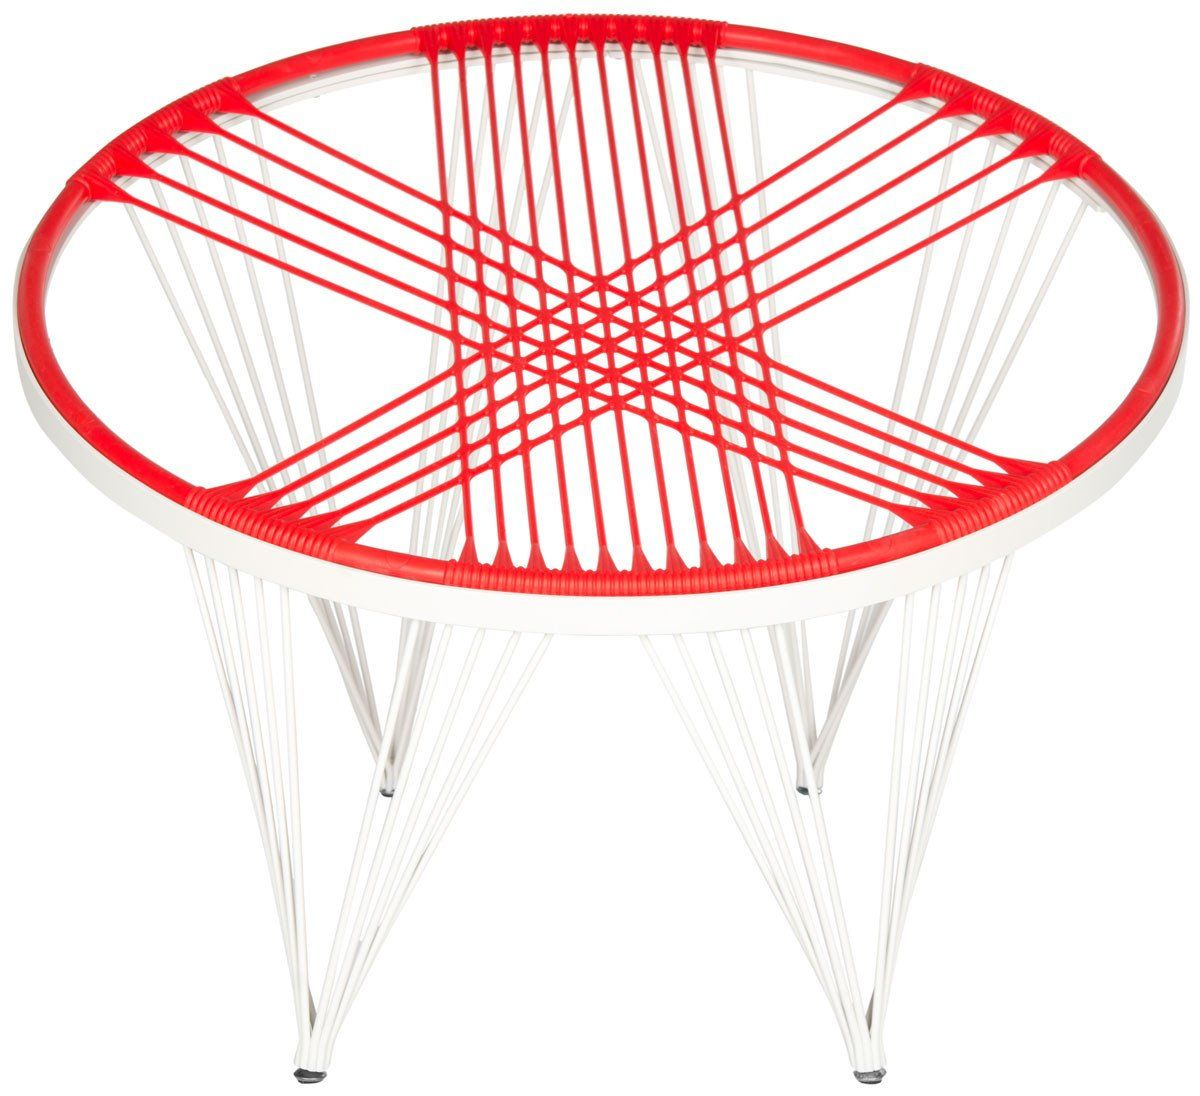 buy safavieh fox9800b launchpad papasan style chair red at contemporary furniture warehouse. Black Bedroom Furniture Sets. Home Design Ideas